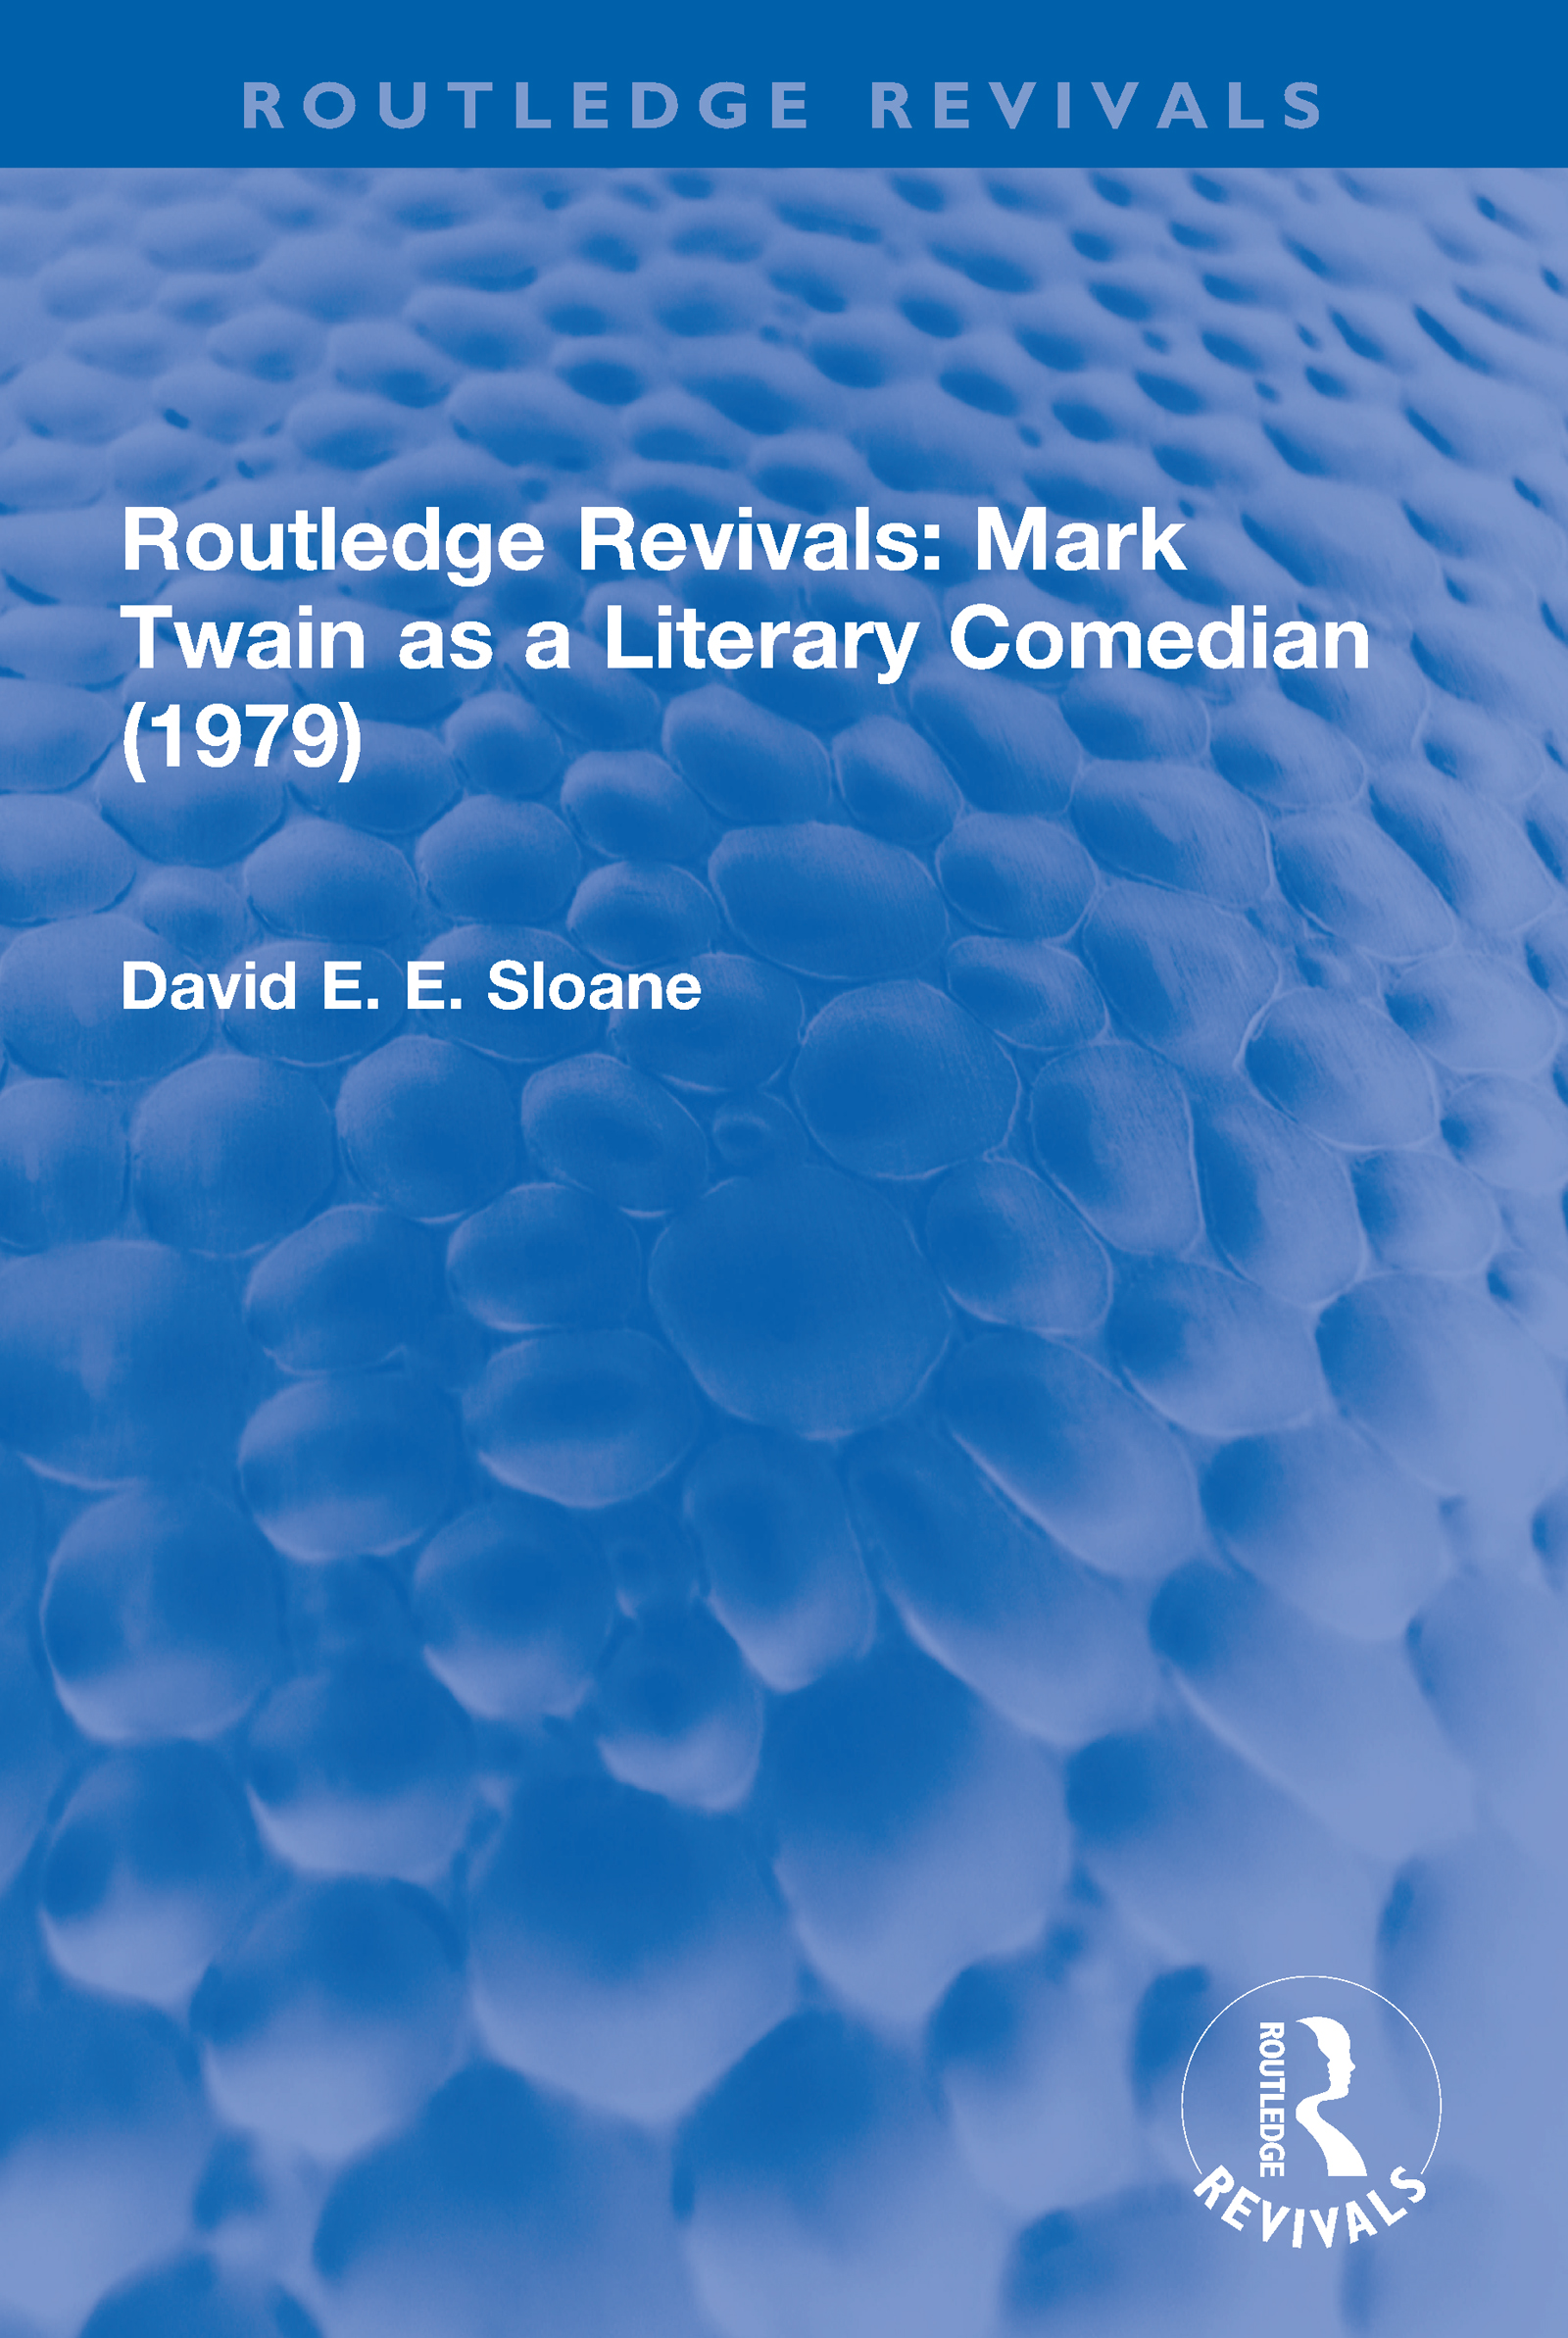 Routledge Revivals: Mark Twain as a Literary Comedian (1979)